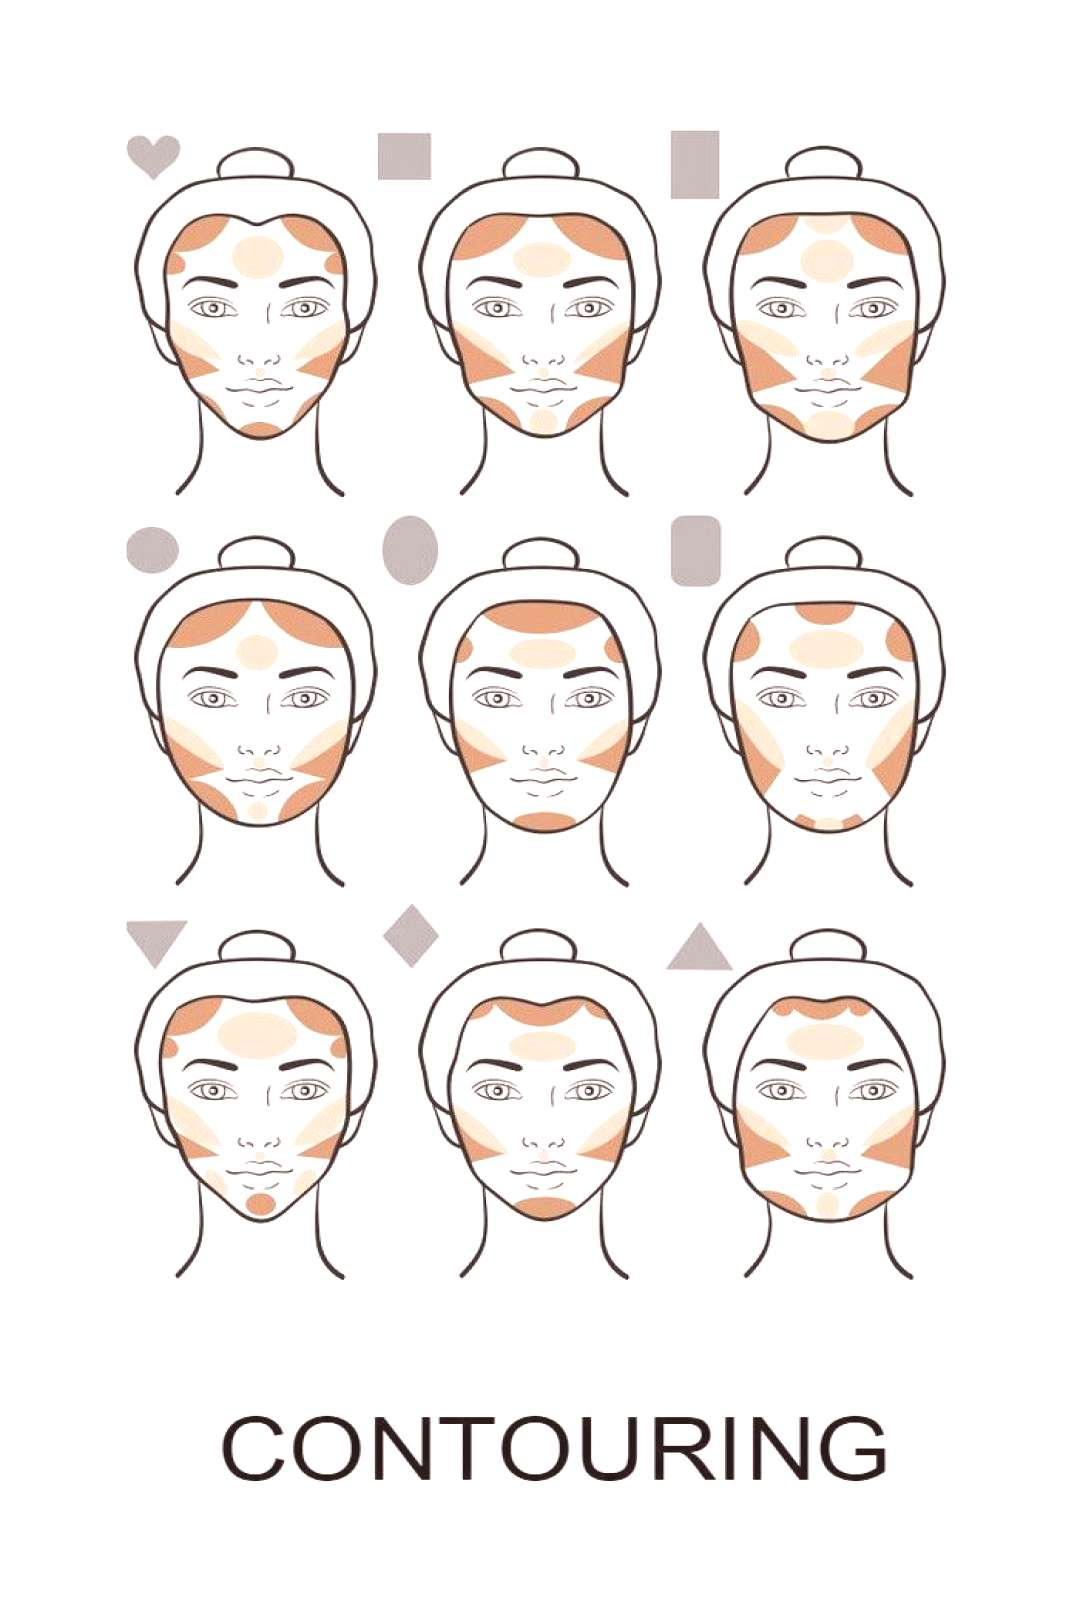 Contouring matching the face shape